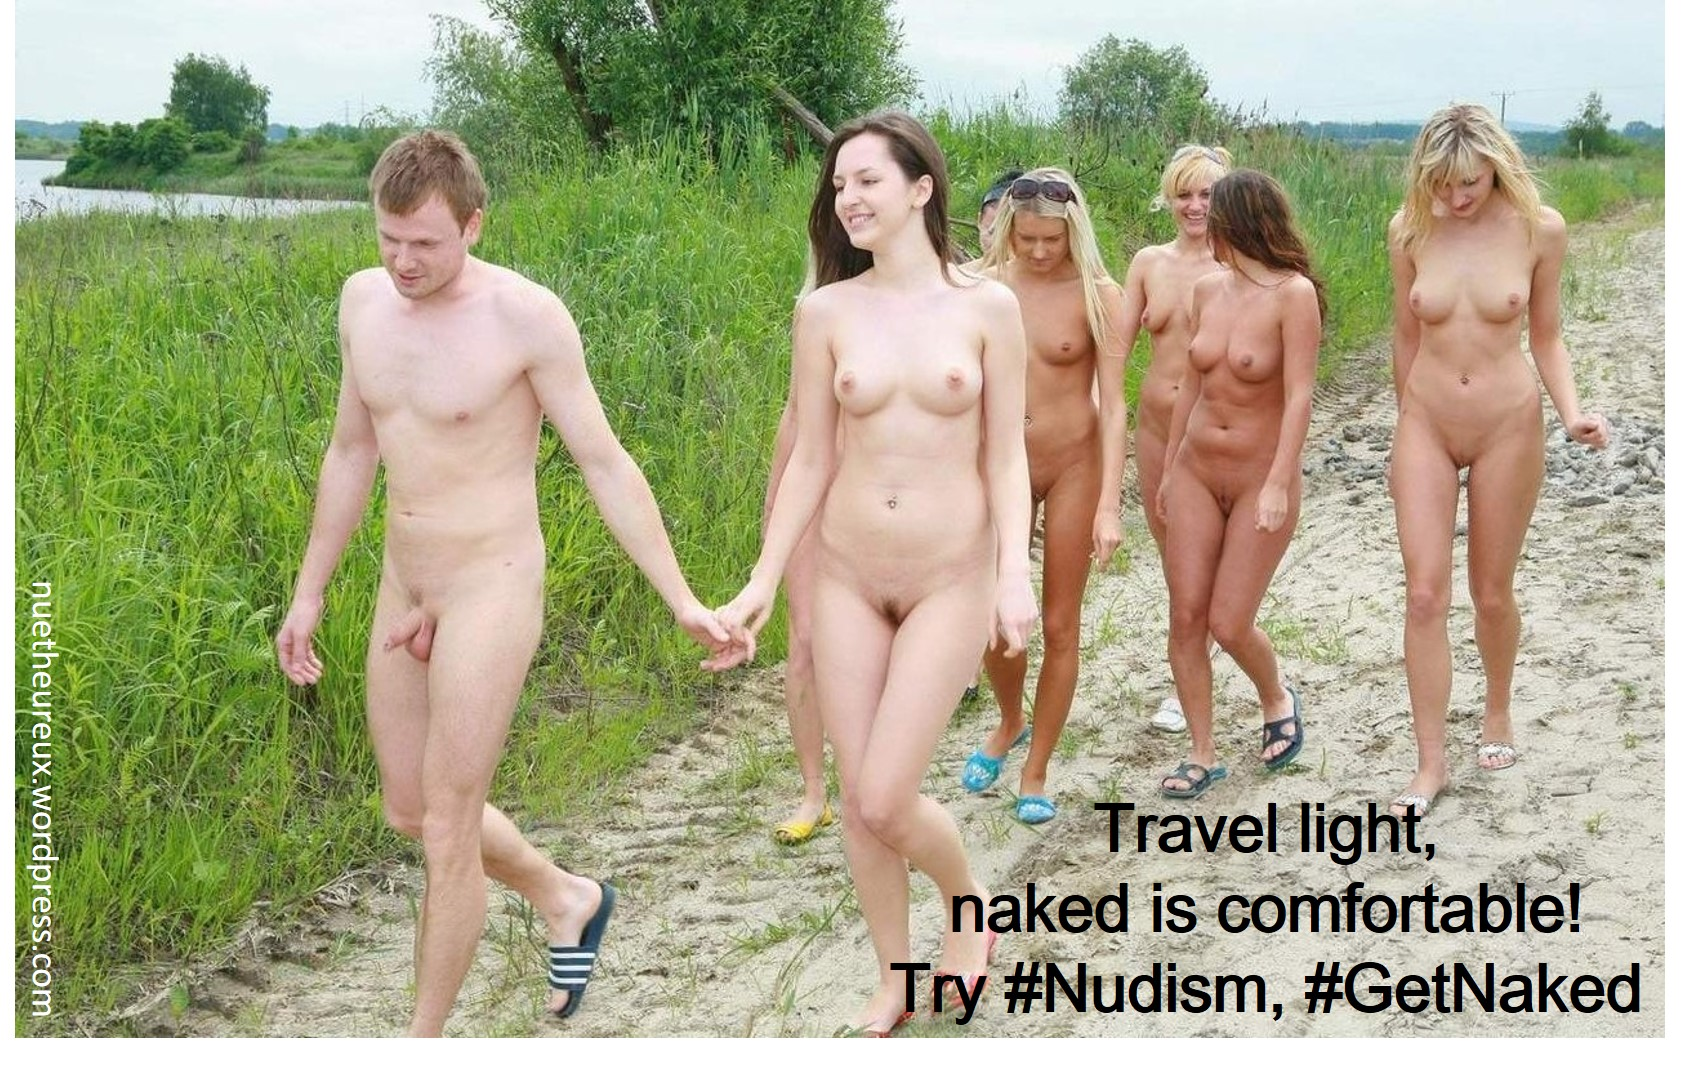 Christian nudist camps